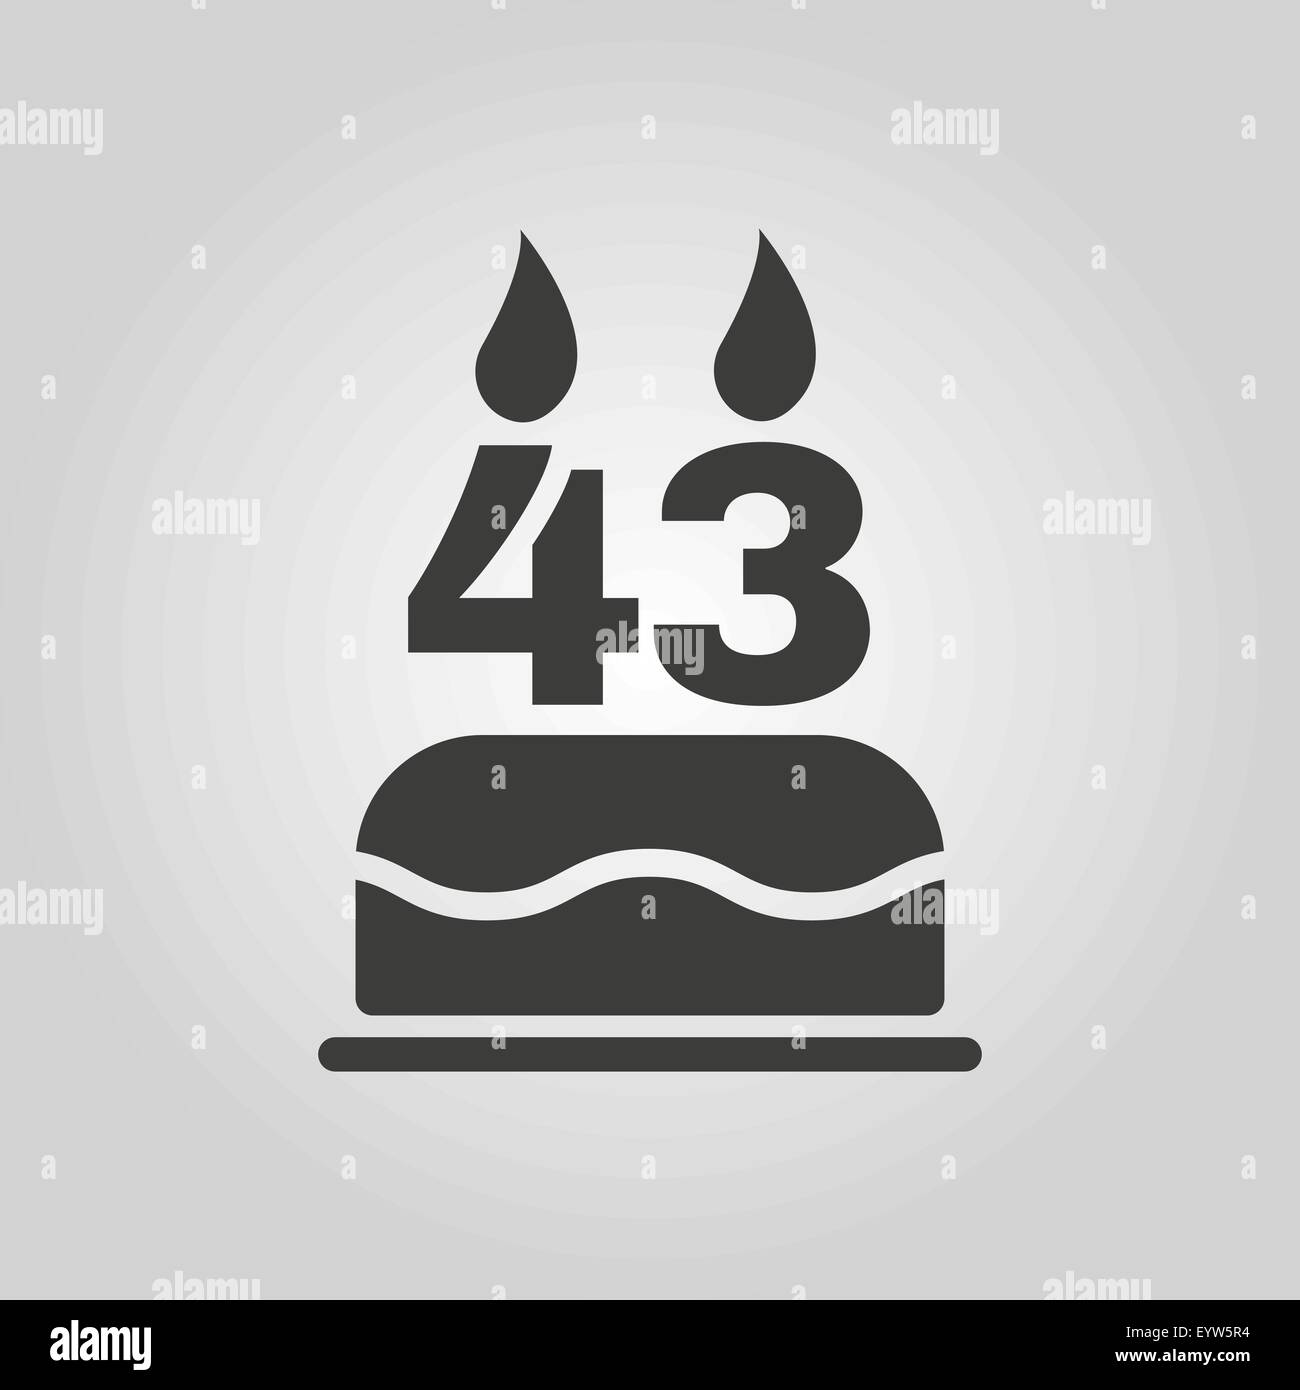 The Birthday Cake With Candles In The Form Of Number 43 Icon Stock